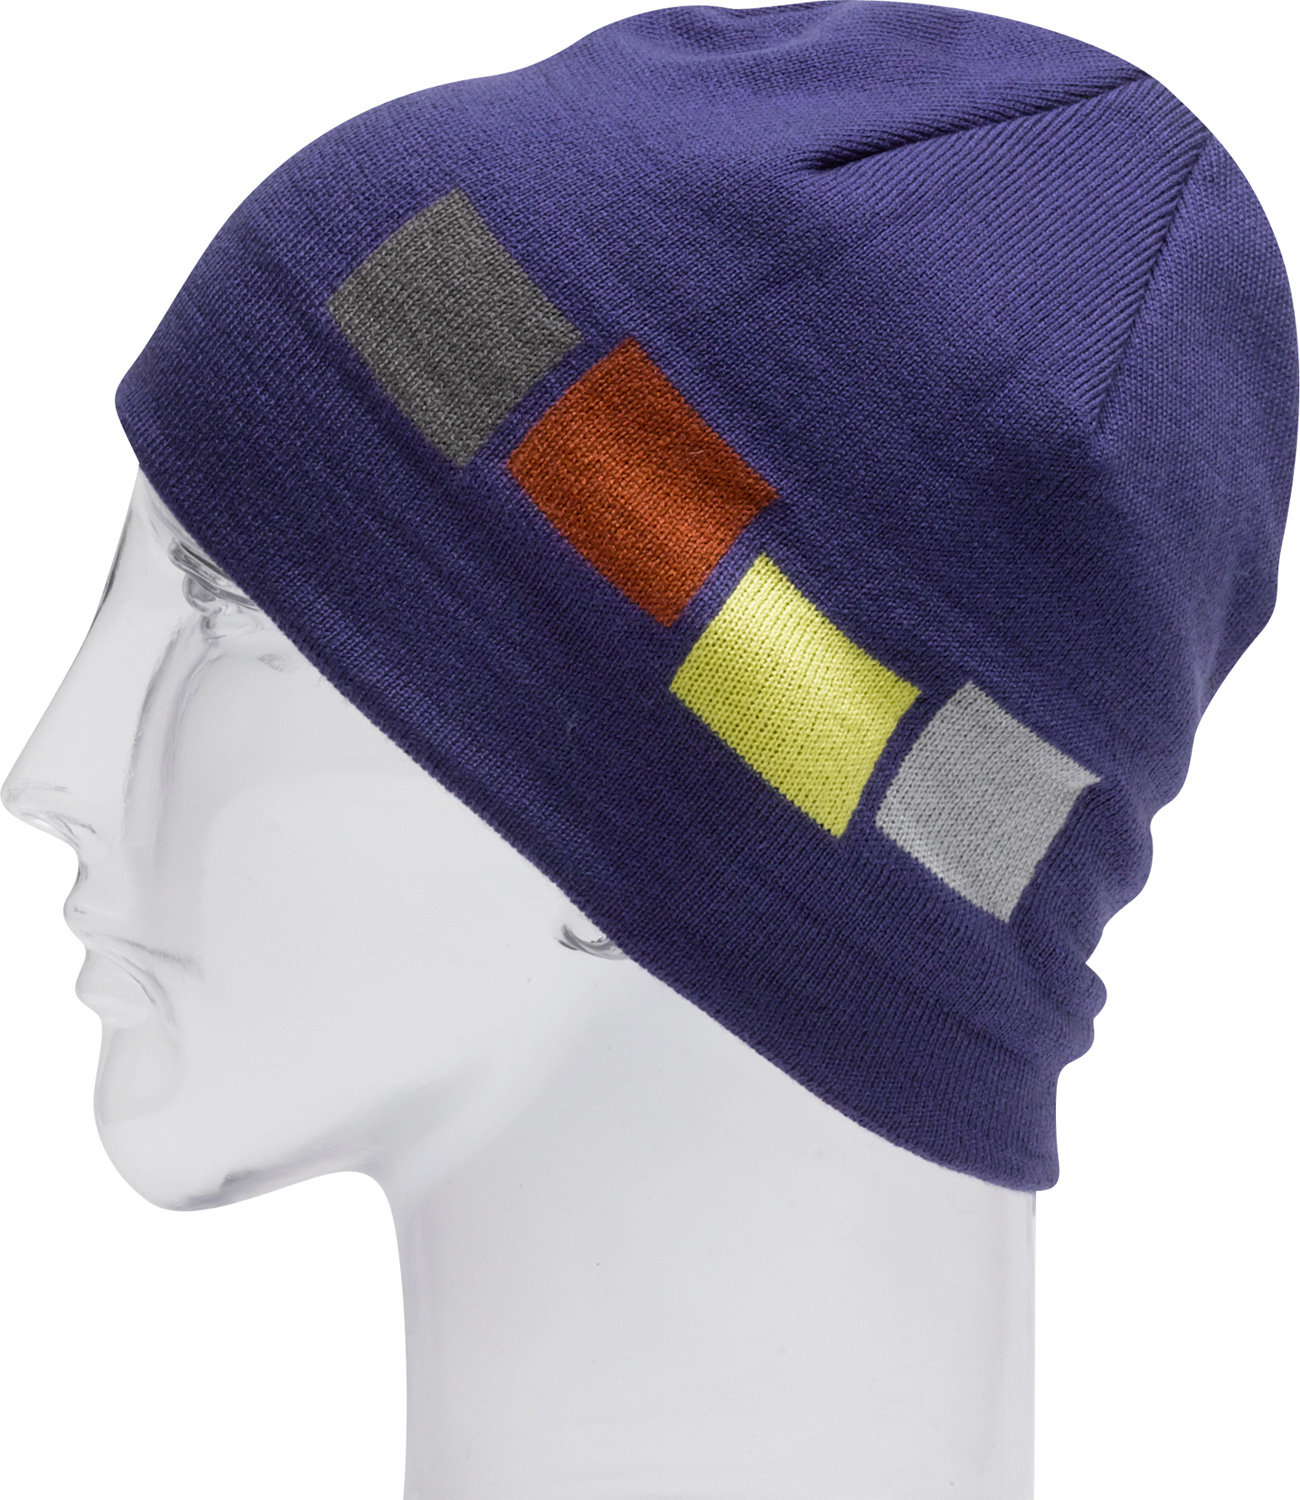 "Snowboard Key Features of the Foursquare Emblem Beanie: 100% Soft Acrylic 9"" Tall Machine Intarsia Knit - $13.95"